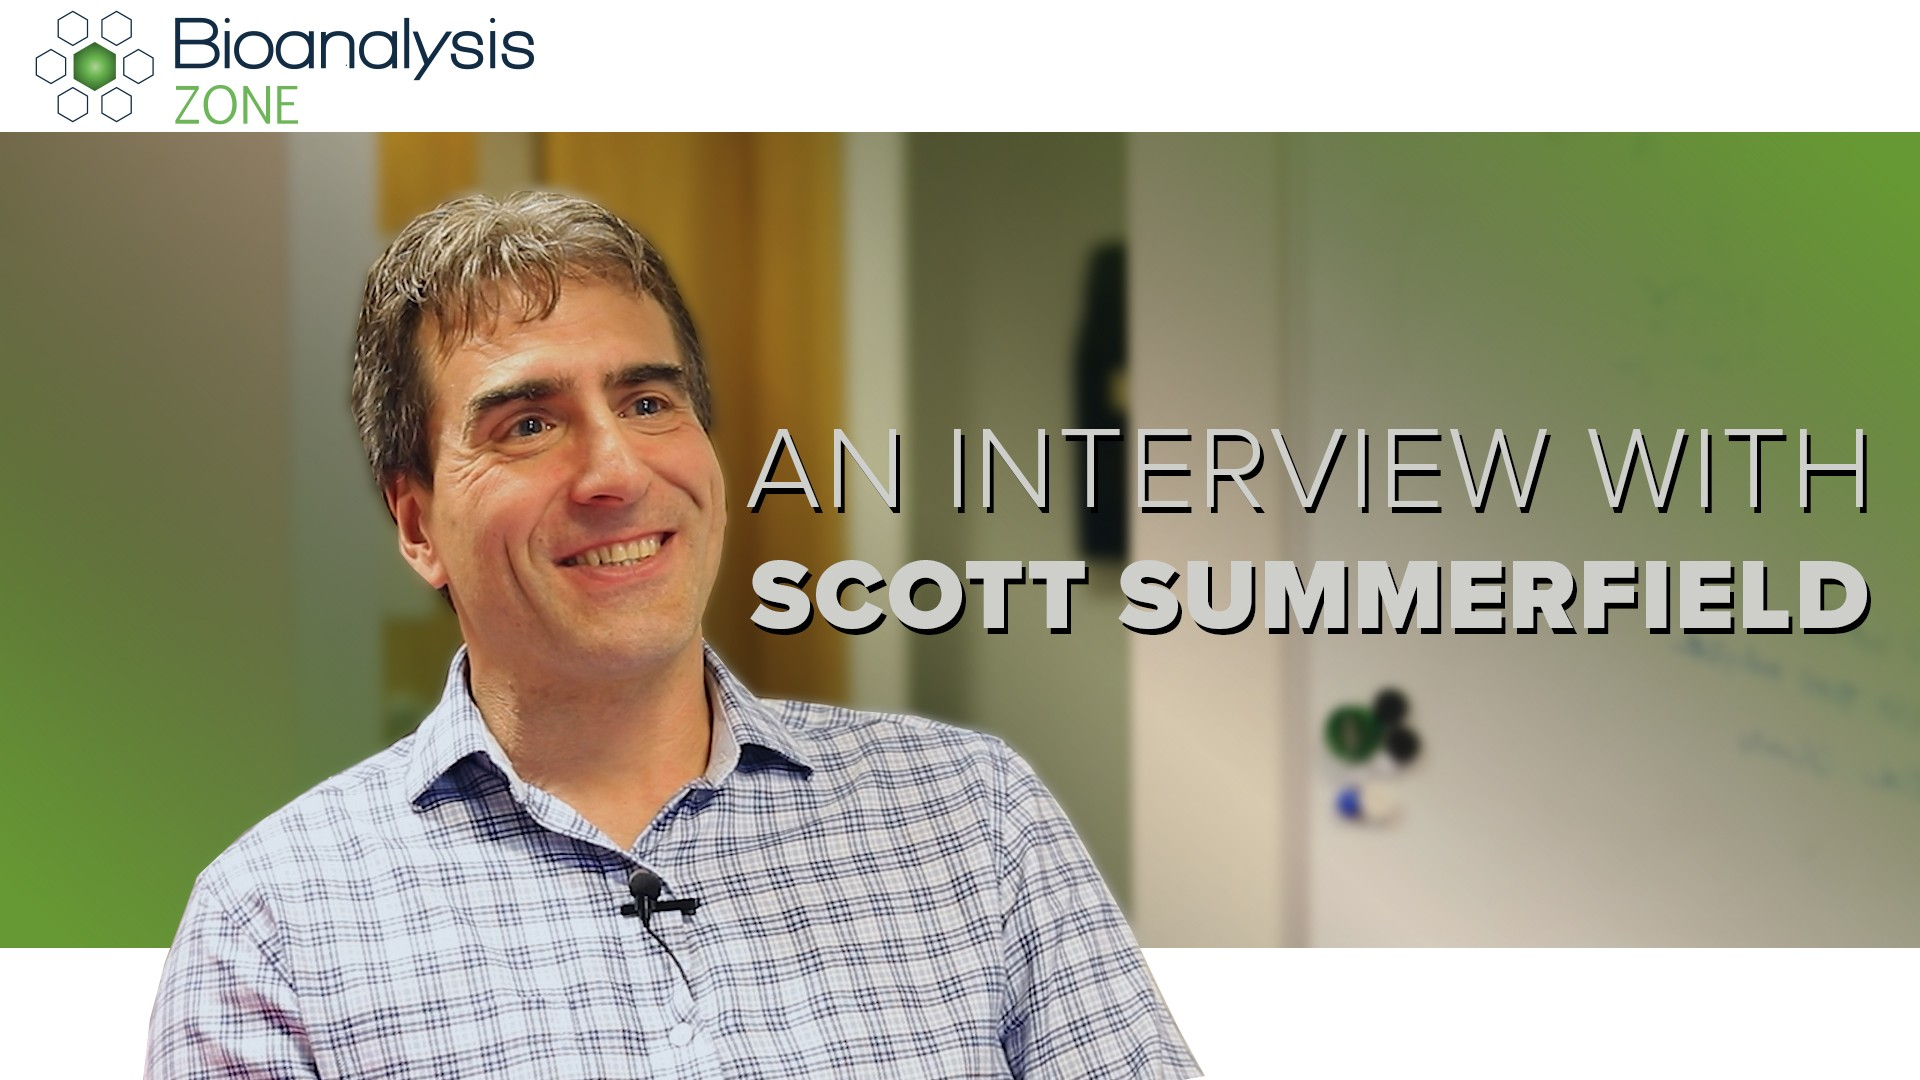 an interview with scott thumbnail | bioanalysis zone